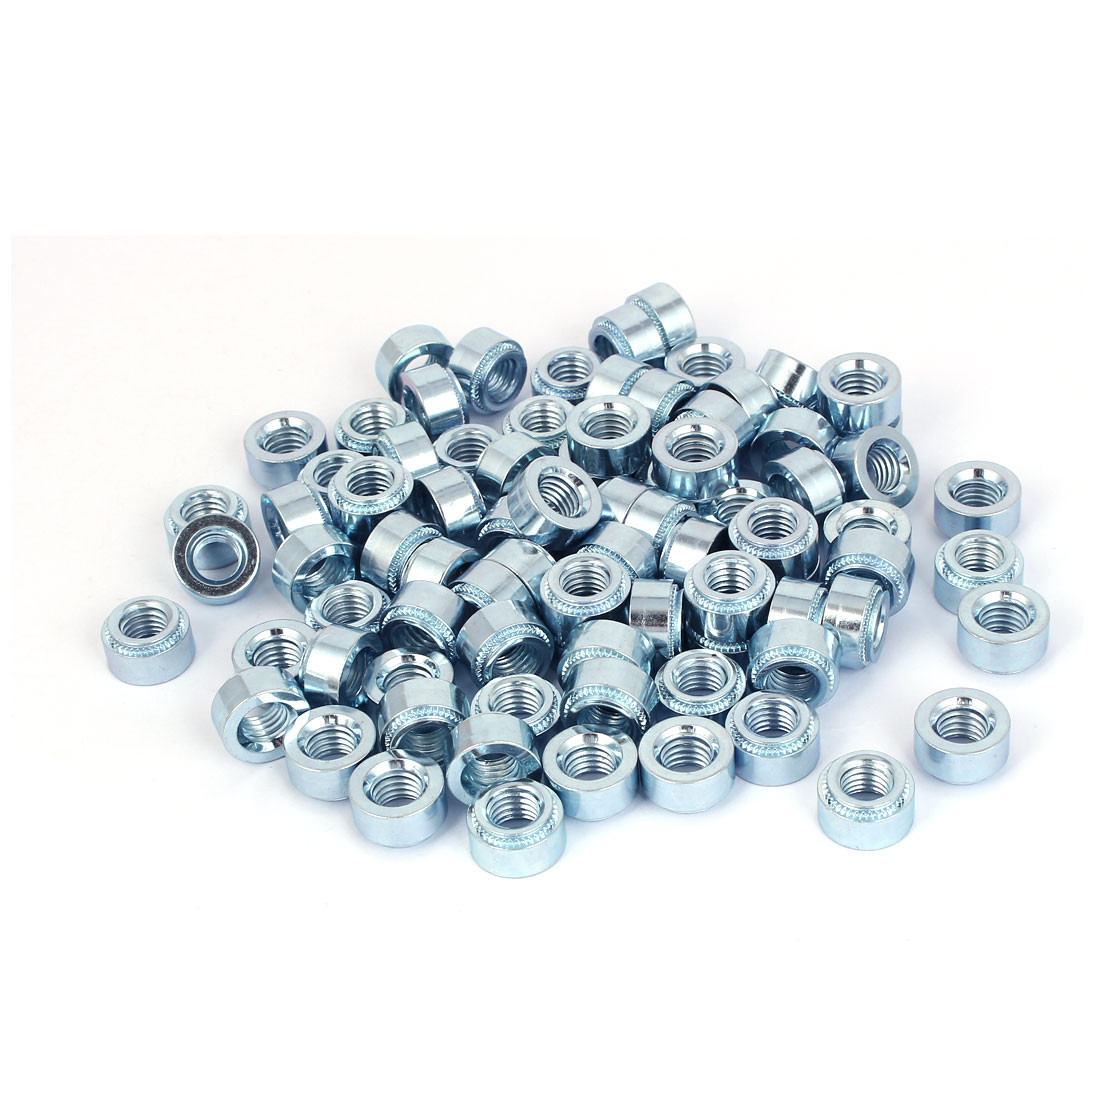 Carbon Steel Self Clinching Nut 10mm Thread Dia 100pcs for 2.3mm Thin Plates